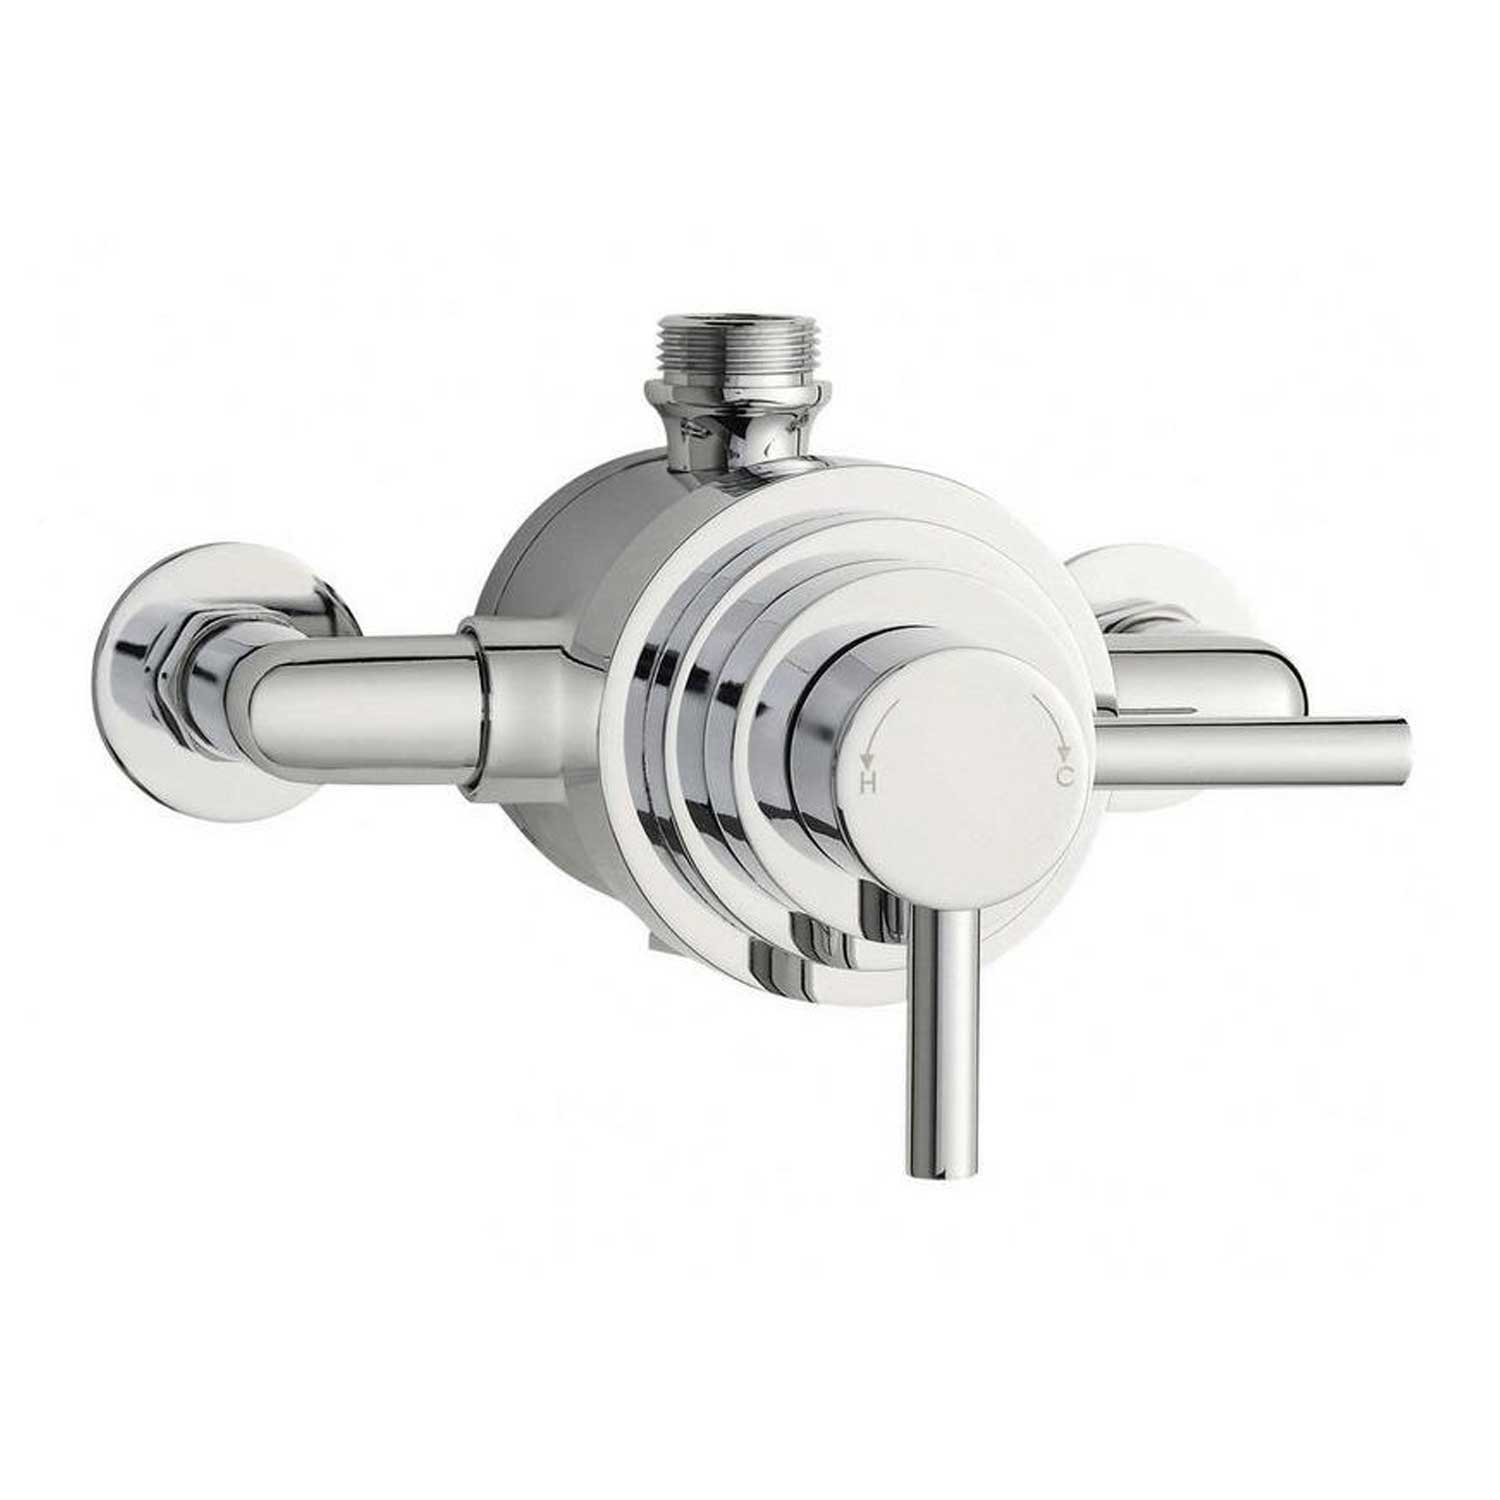 Hudson Reed Tec Dual Exposed Shower Mixer with Shower Kit + Fixed Head - Chrome